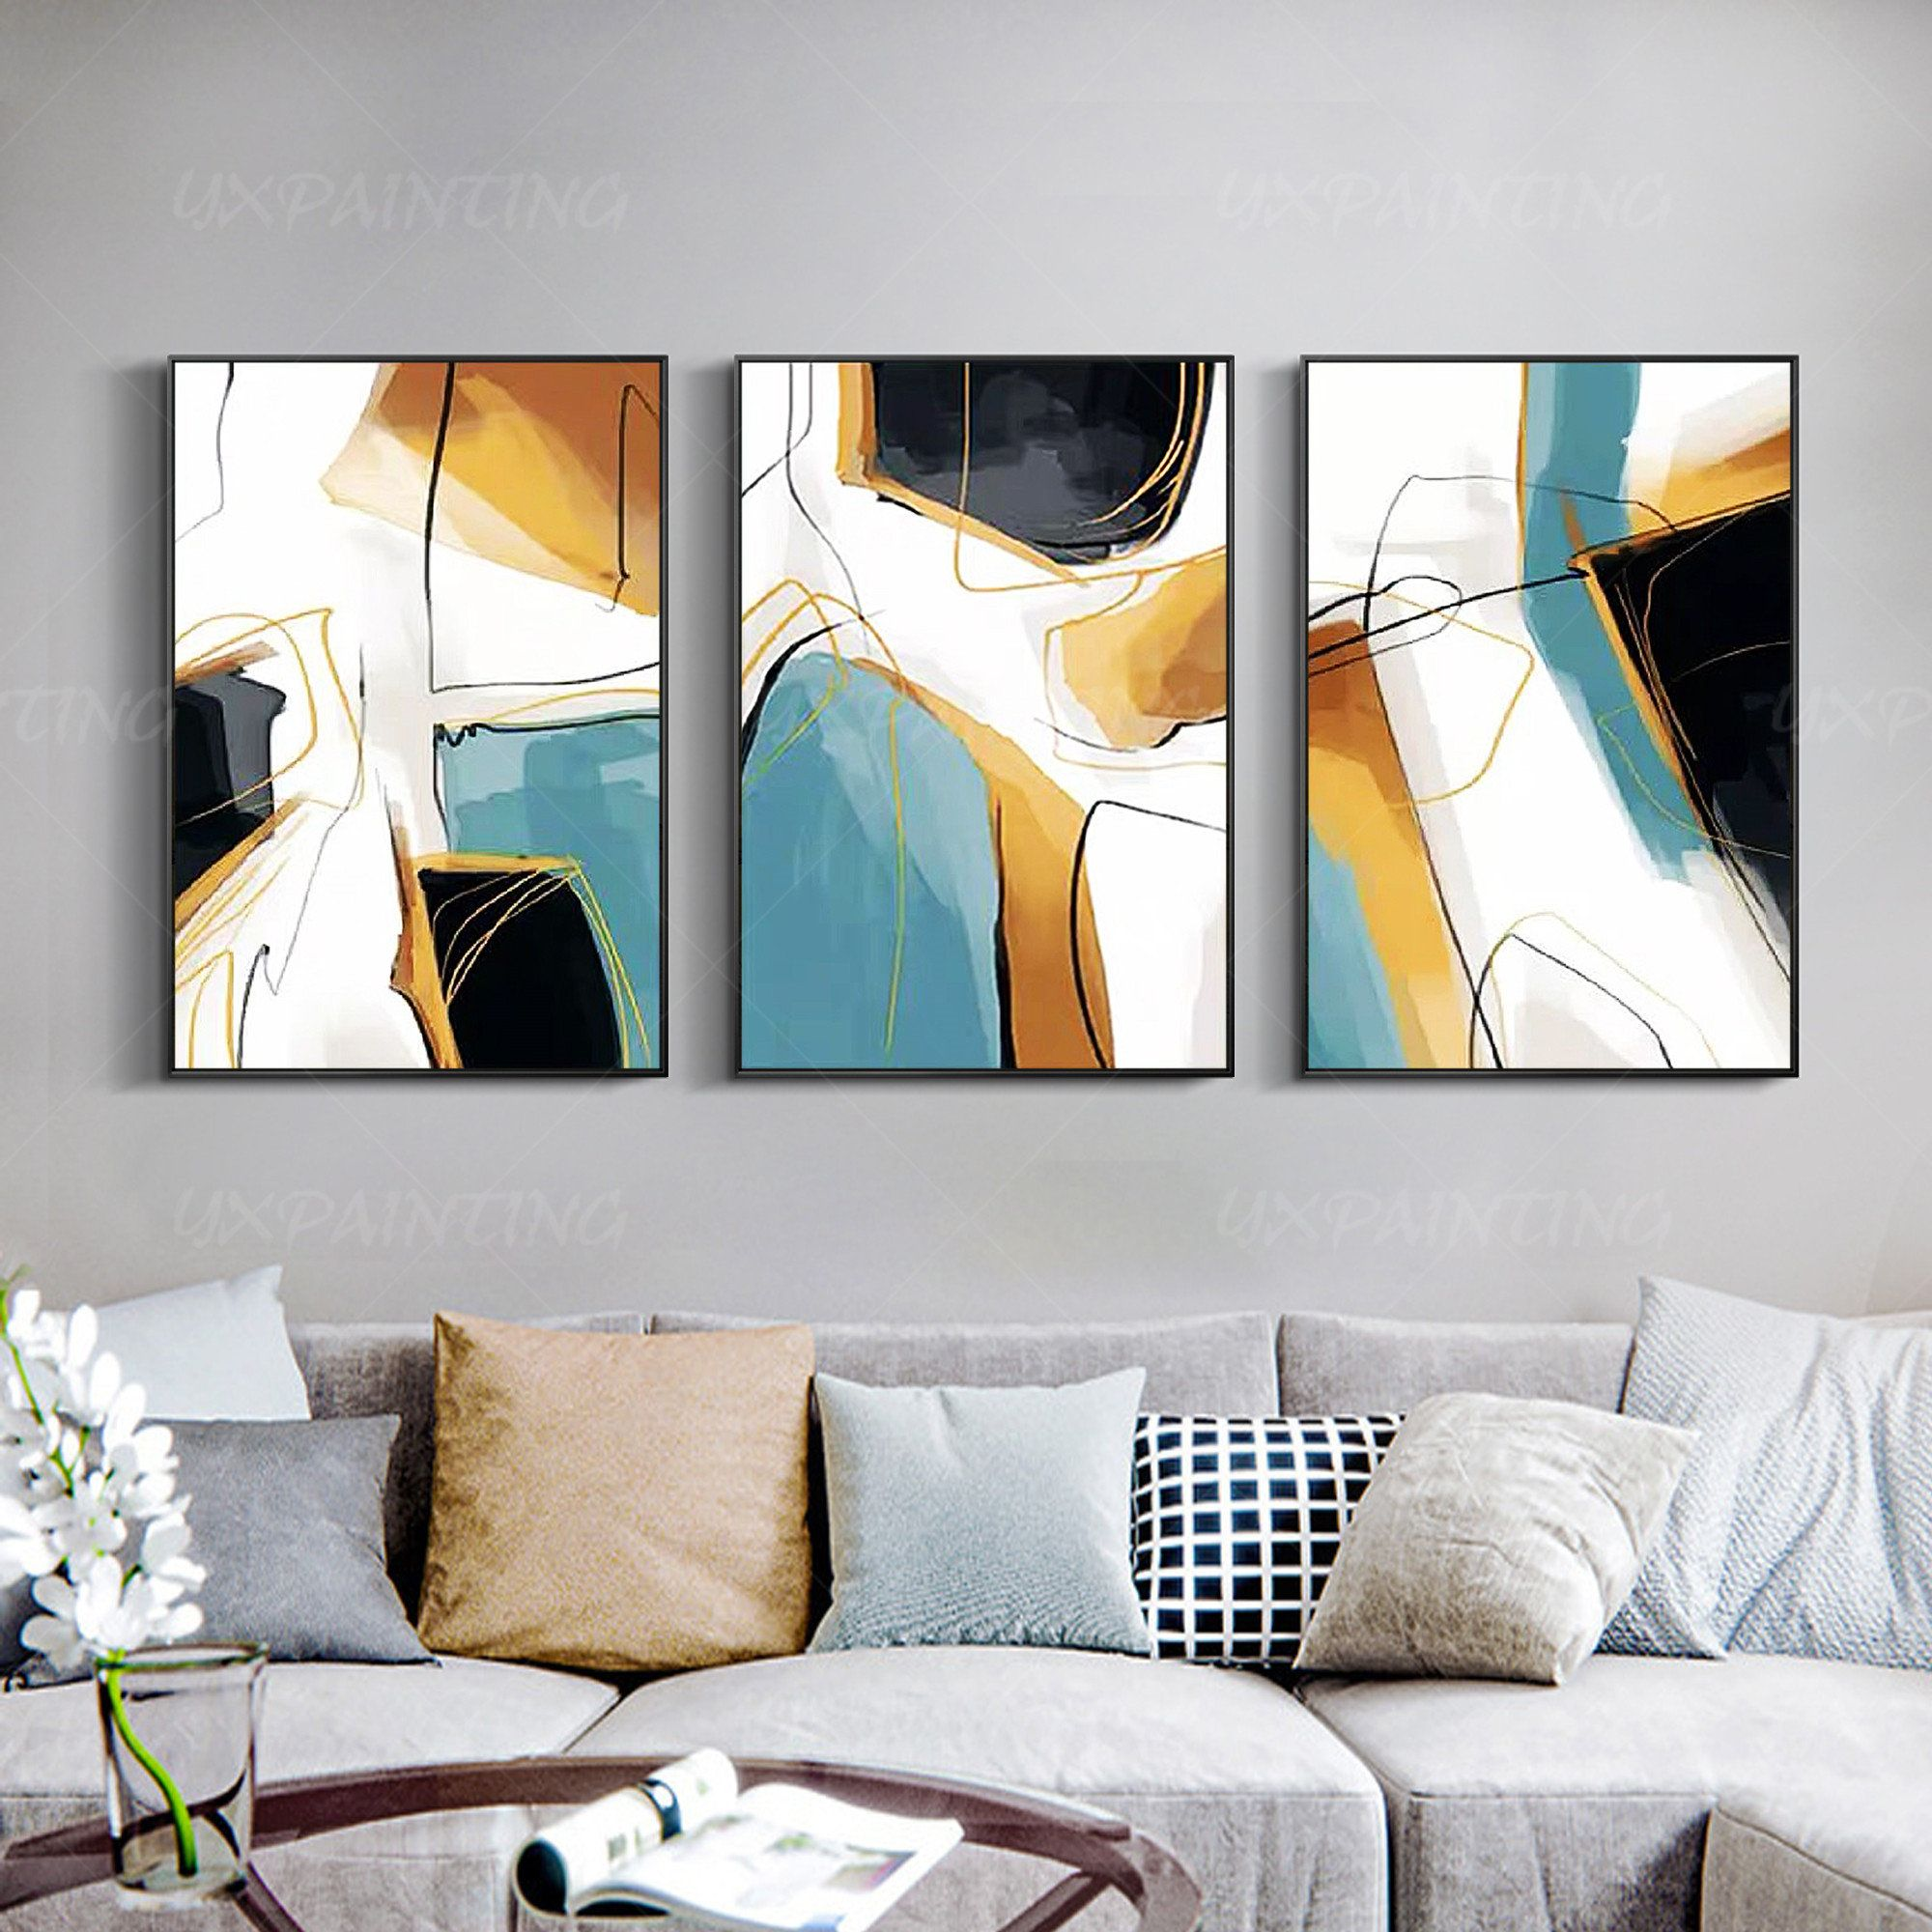 Framed Wall Art Geometric Painting Teal Blue Art Set Of 3 Wall Etsy Geometric Painting Framed Wall Art Geometric Wall Art